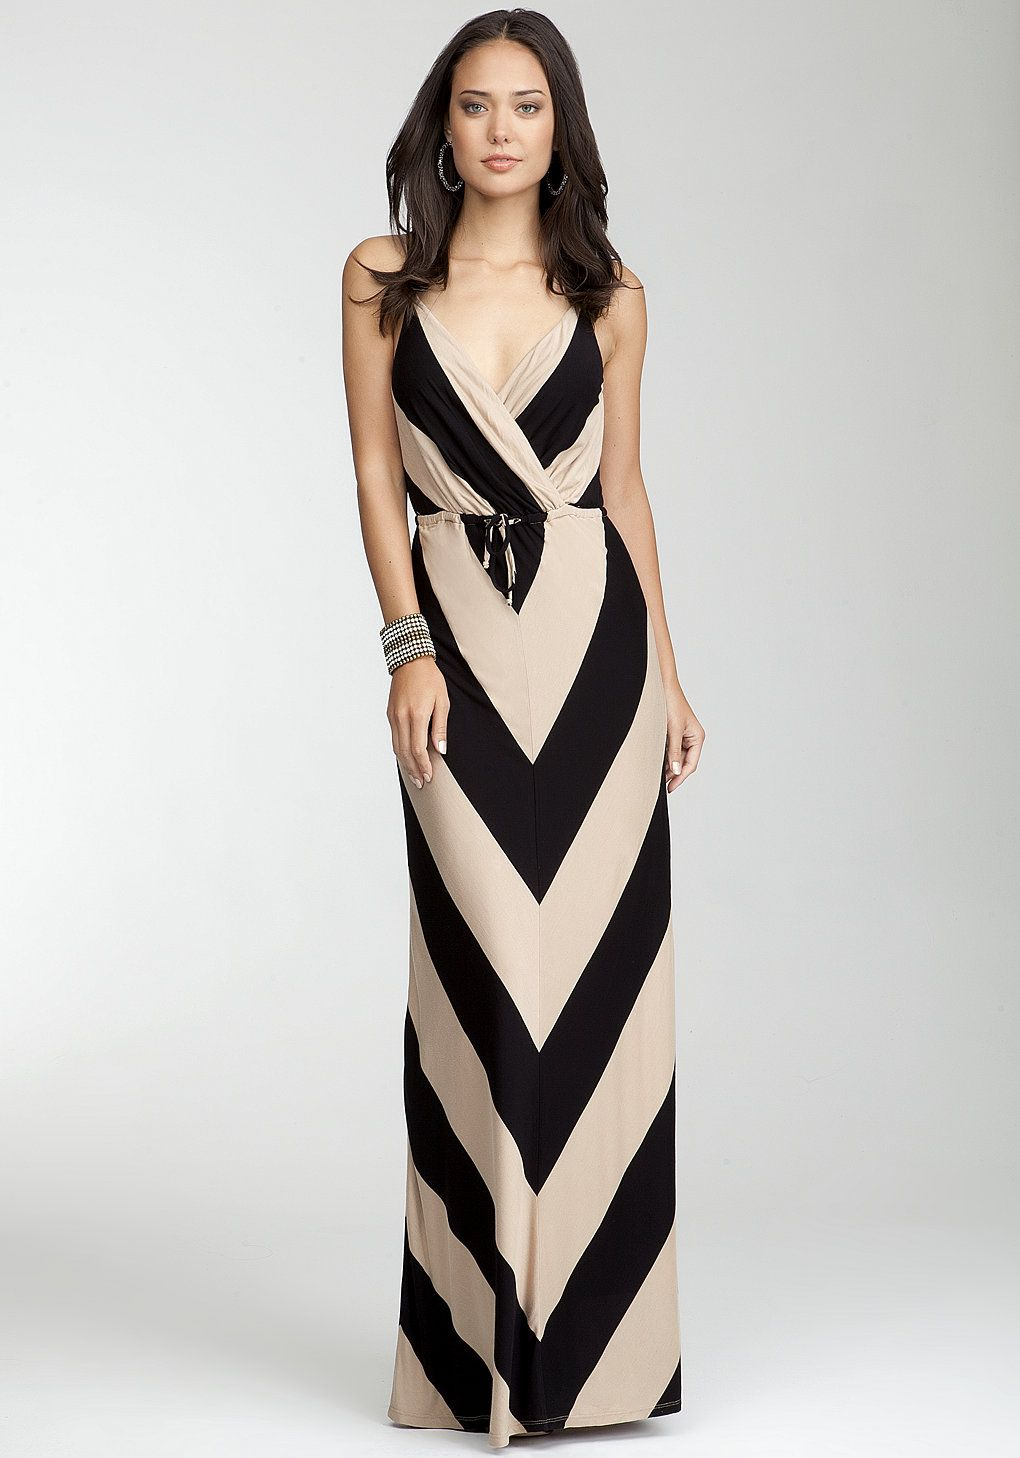 White and Black striped maxi dress bebe pictures